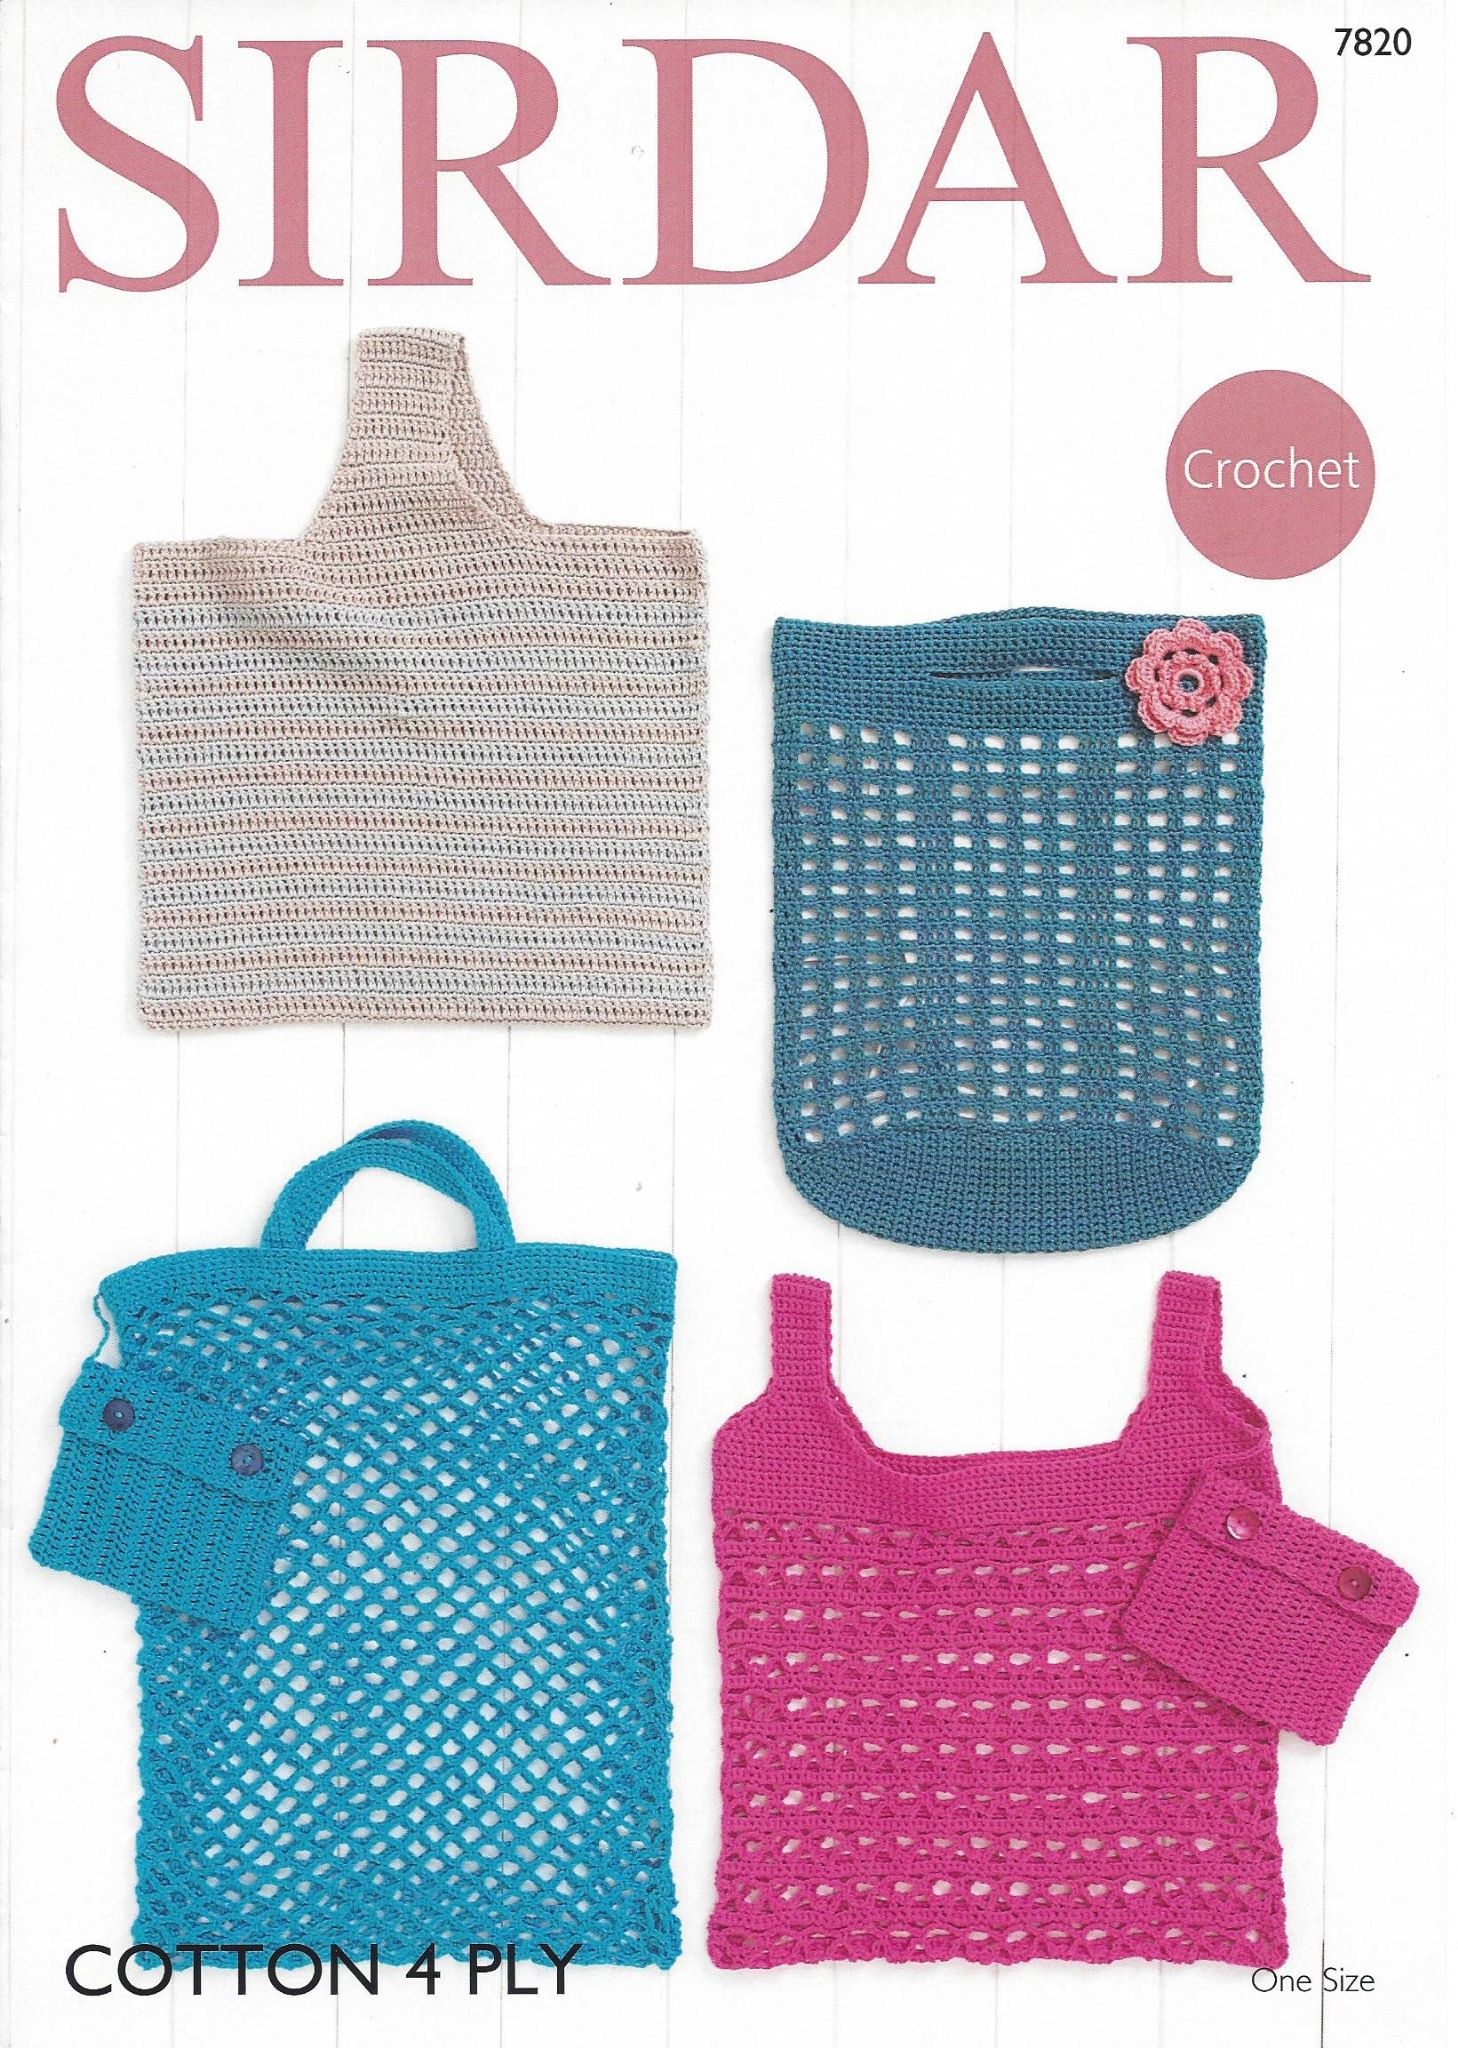 4 Ply Cotton Knitting Patterns : Sirdar Cotton 4ply - 7820 Bags Crochet Pattern